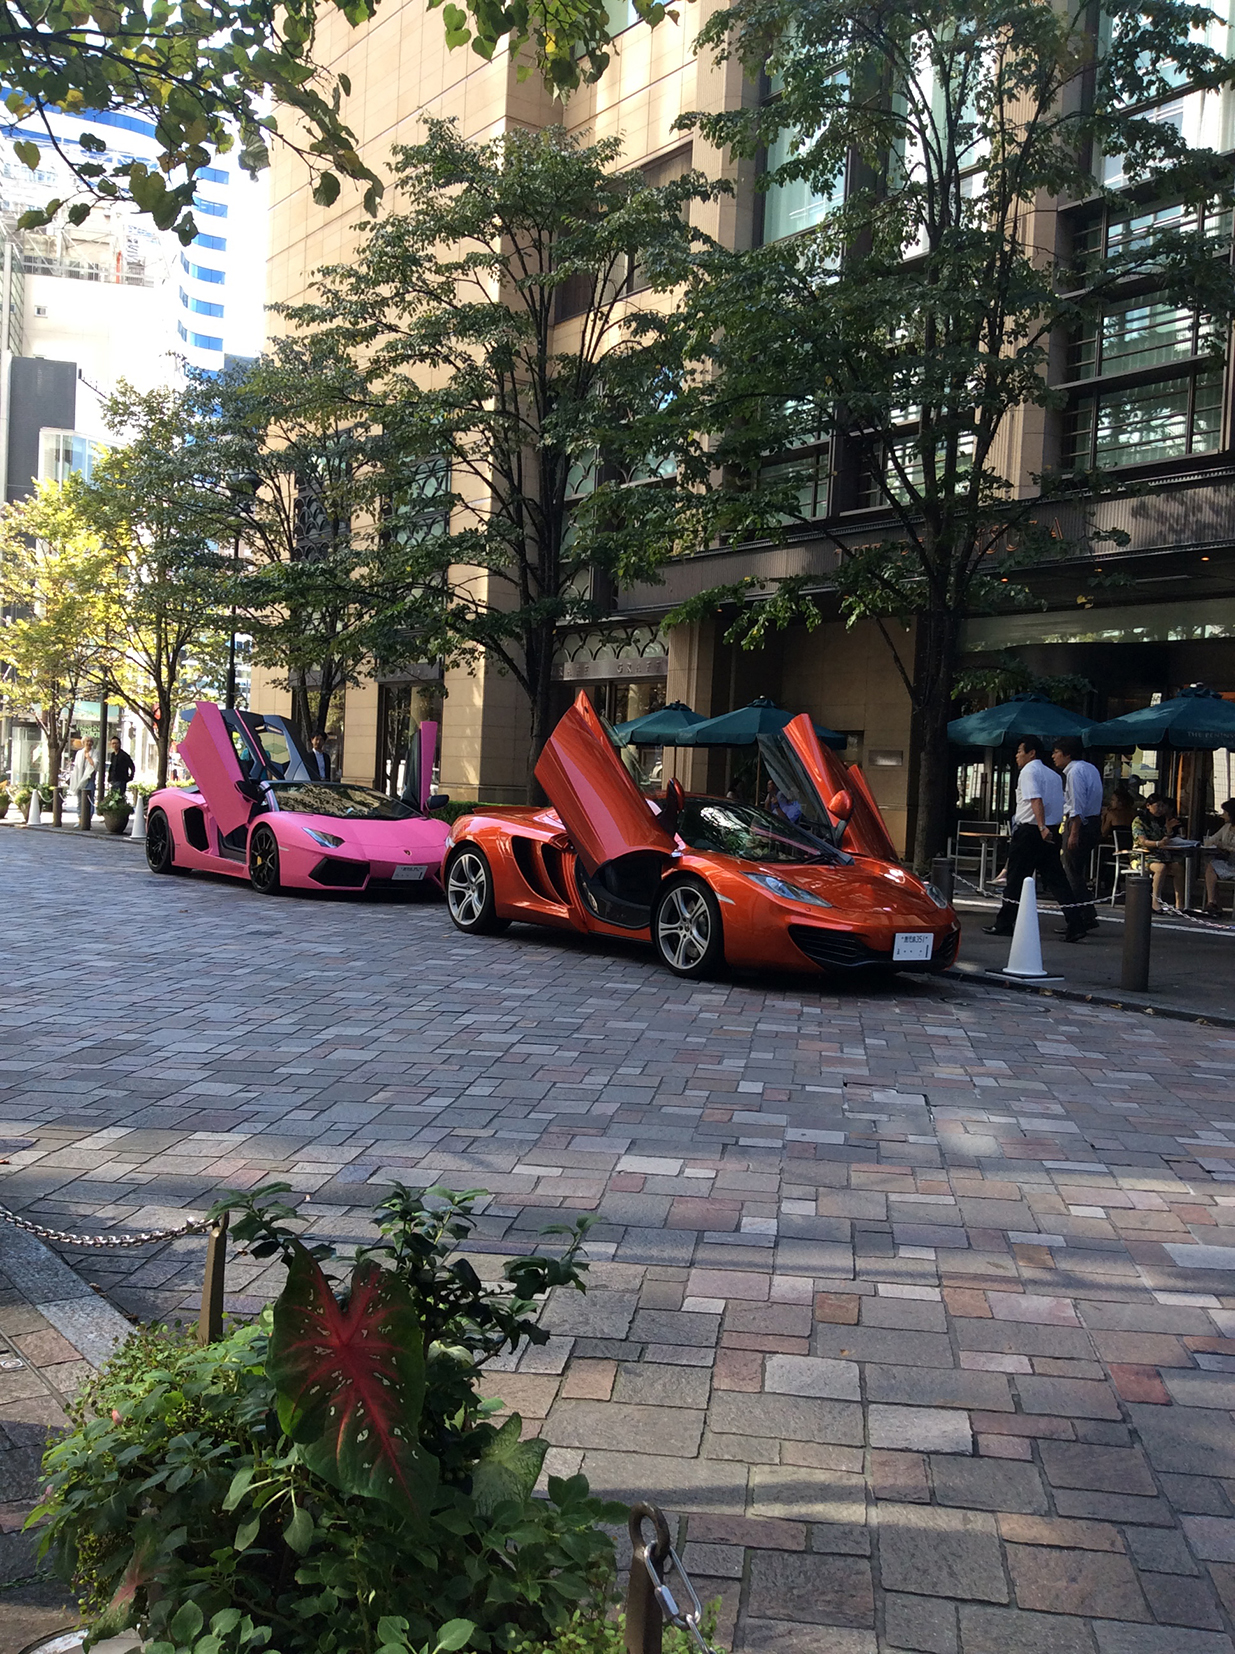 the tree lined avenue in Marunouchi, with a container of plants in the foreground and across the paved road two Lamborginis, one pink, one orange, are parked with their gull-wing doors high in the air.